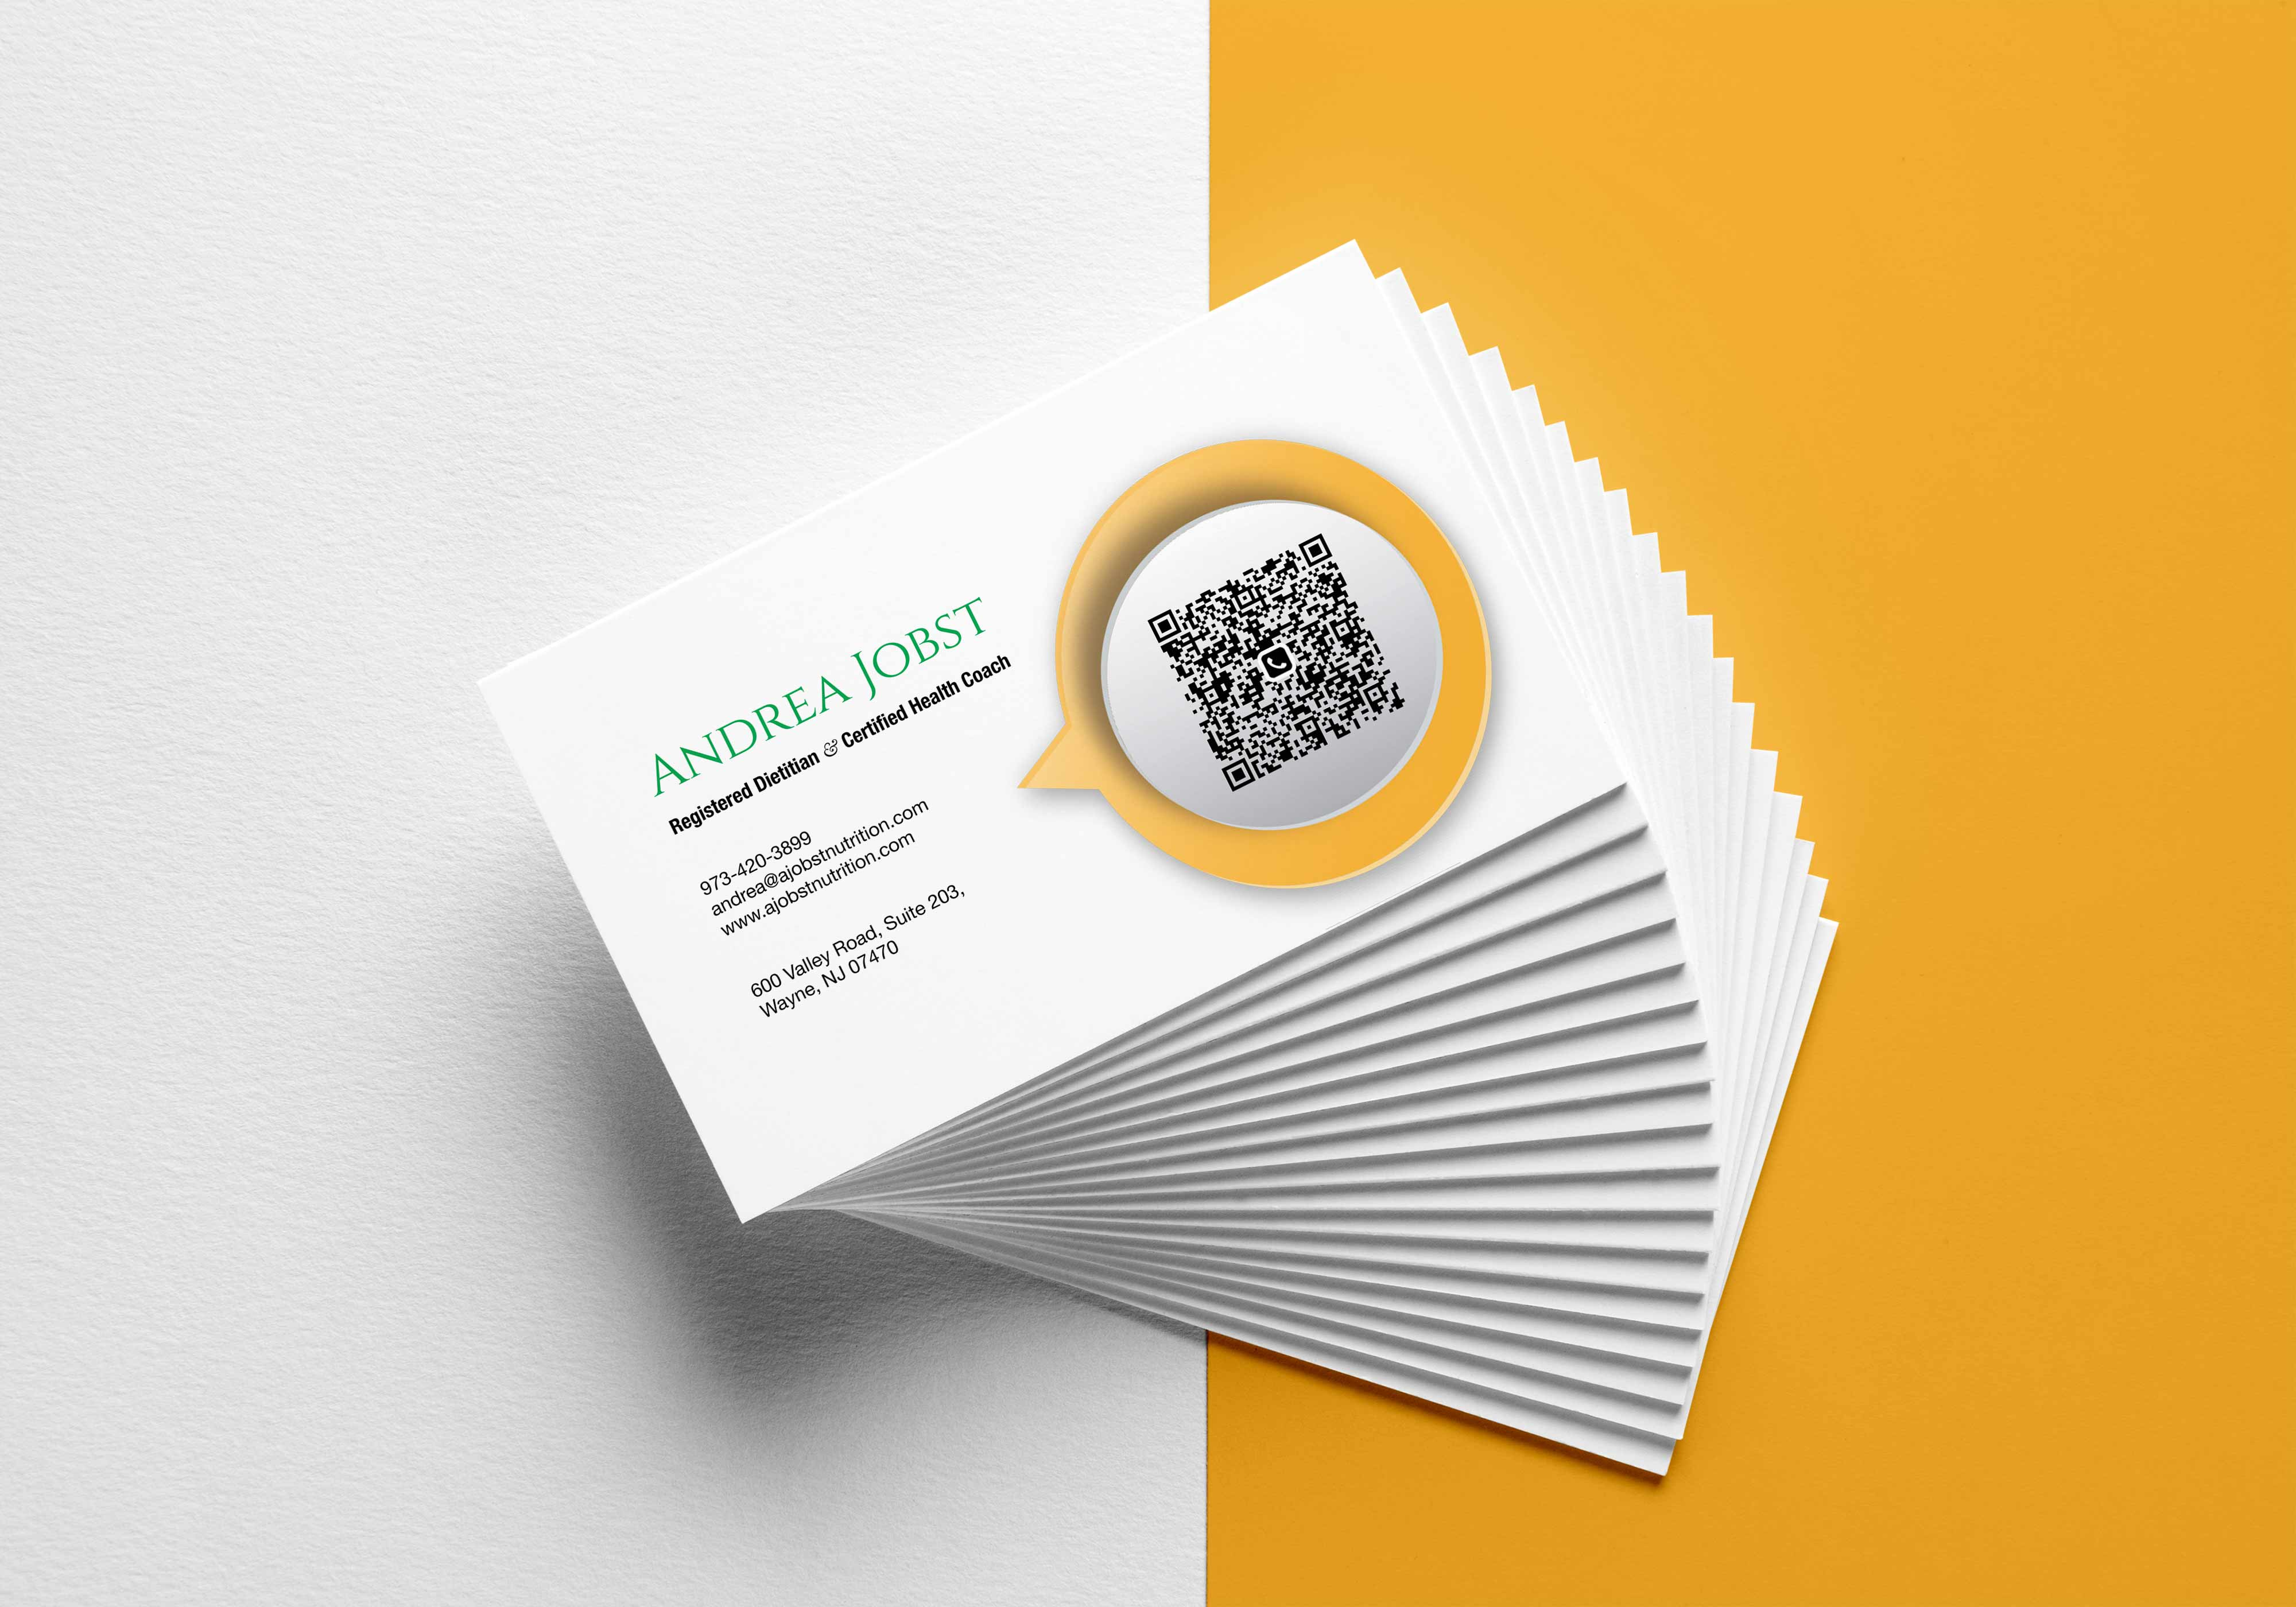 Business Cards for A Jobst Nutrition — Registered Dietitian & Certified Health Coach